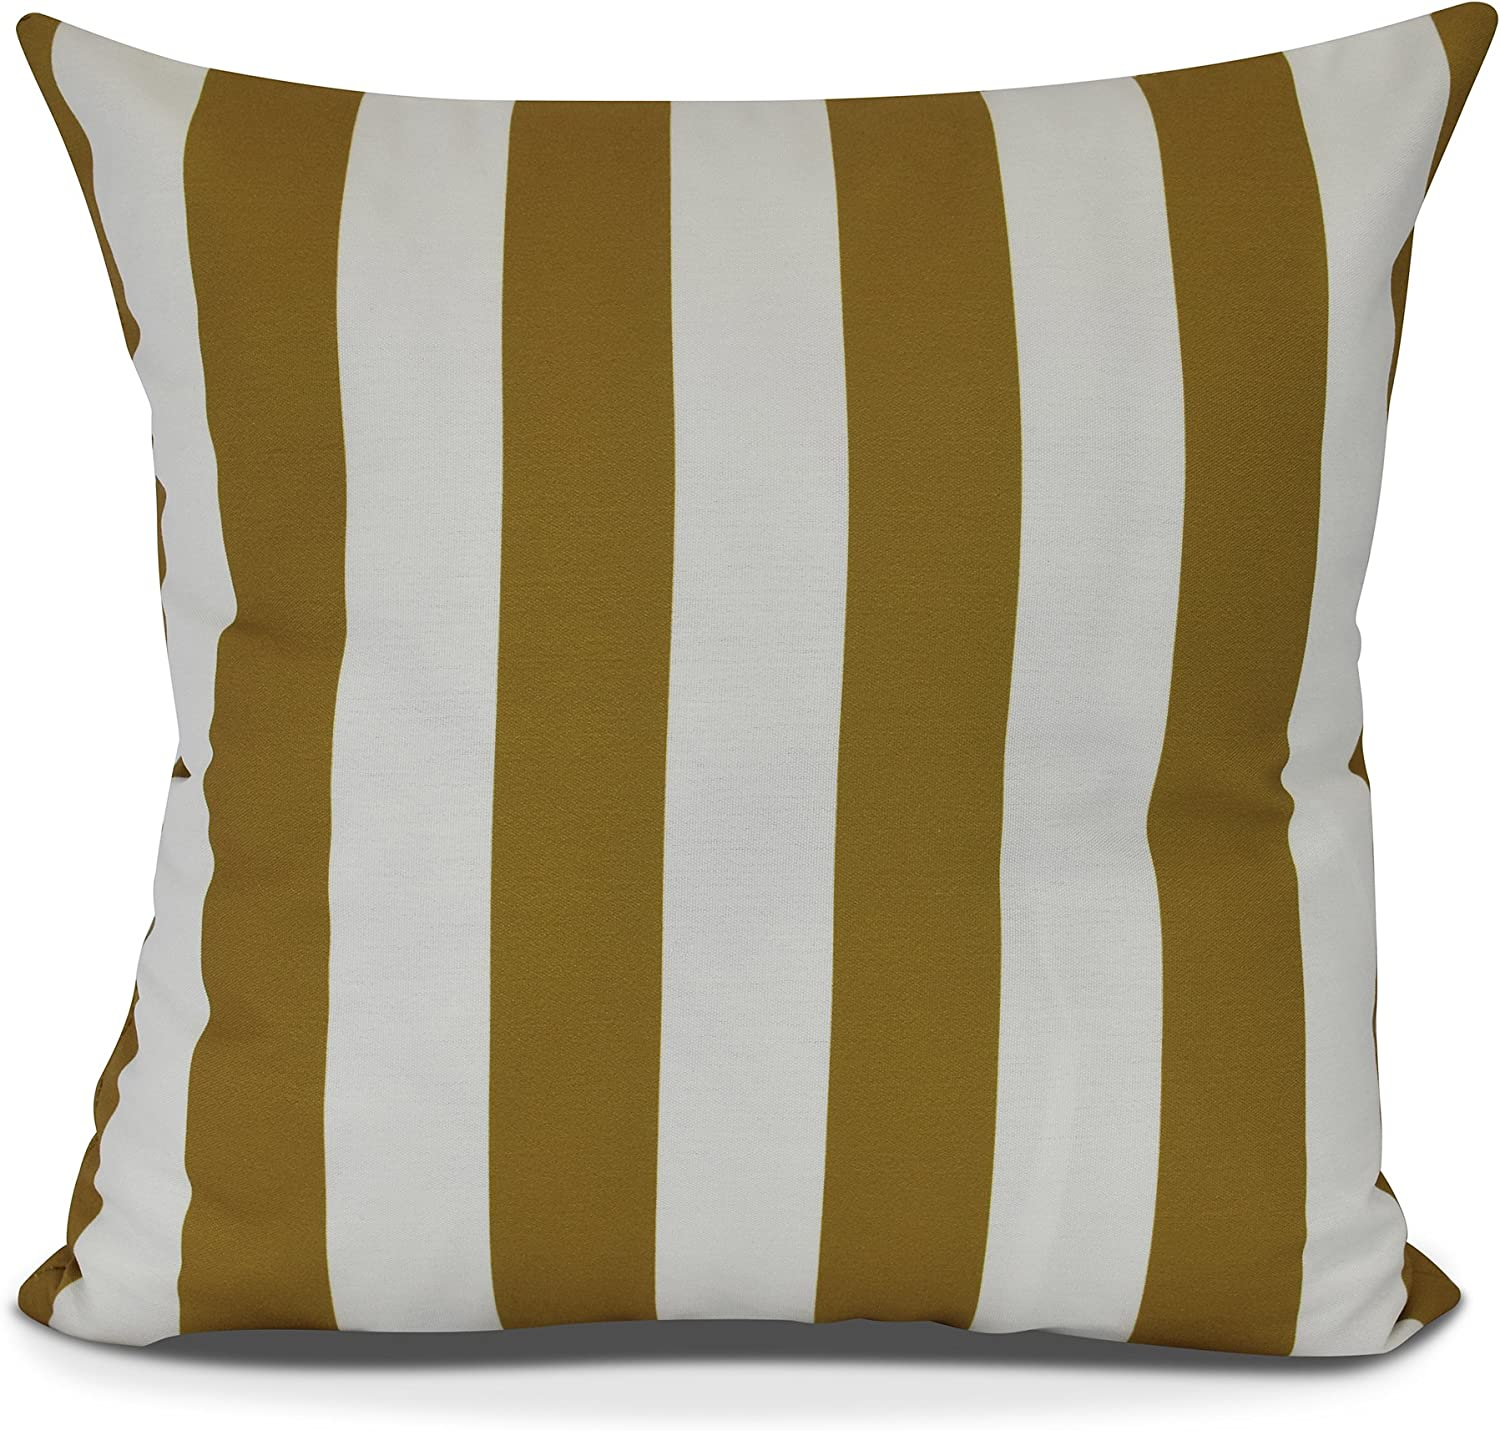 bbd906ebc E by Pillow, O5PS866YE22-18, Yellow, 18 design nozjkf5504-Furniture